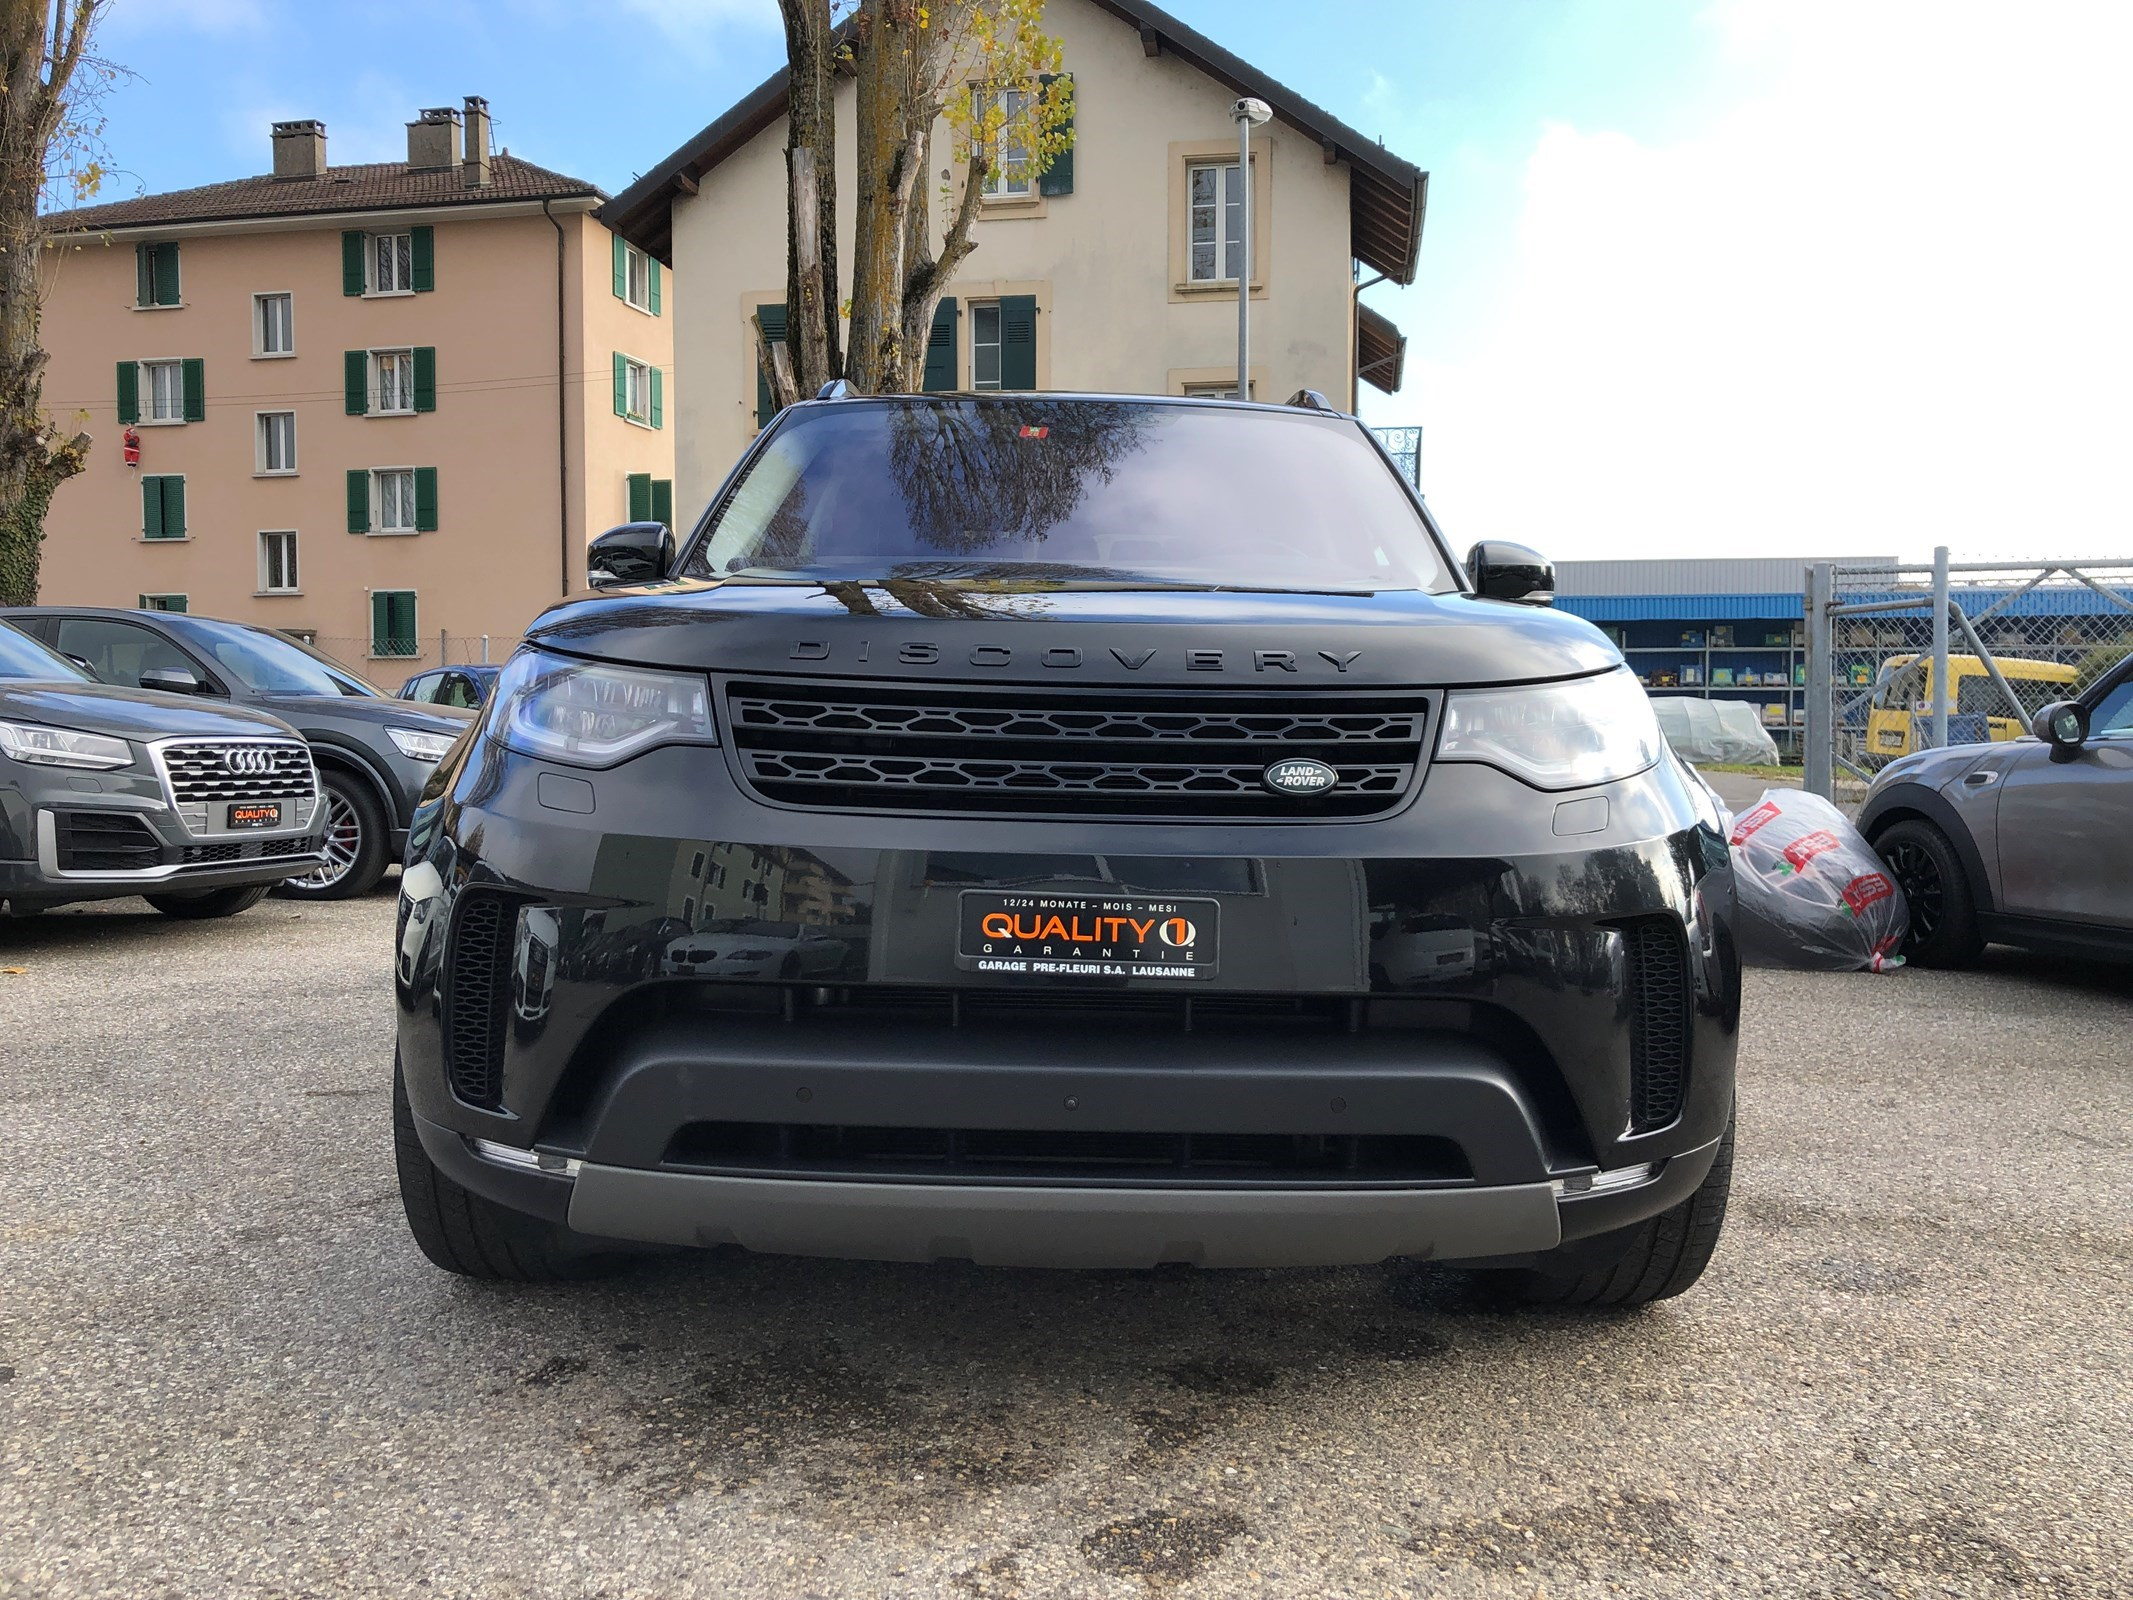 suv Land Rover Discovery 3.0 TD6 HSE Luxury Automatic